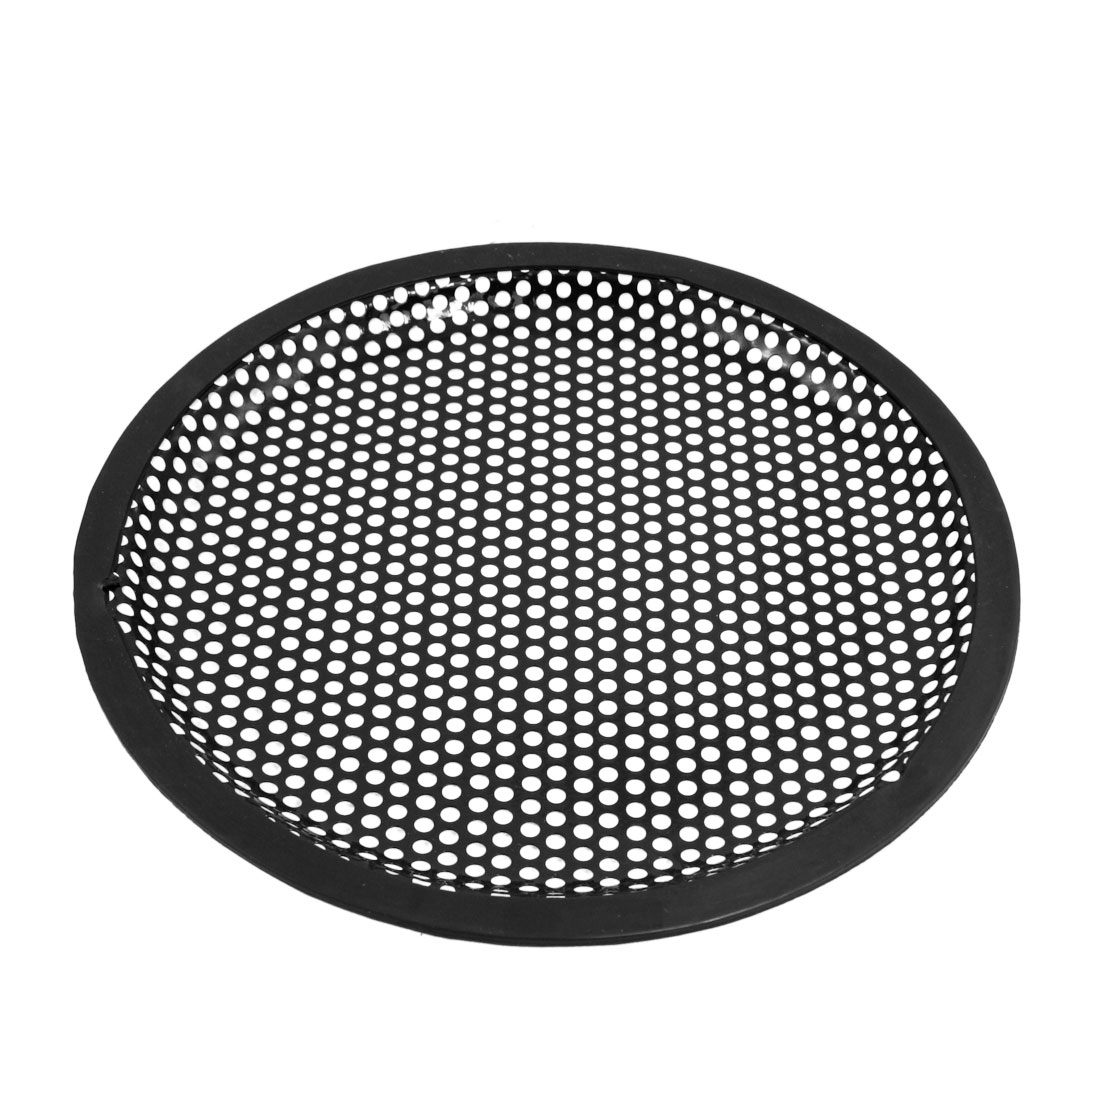 uxcell 5 inches Speaker Grill Mesh Decorative Circle Woofer Guard Protector Cover Audio Parts Silver